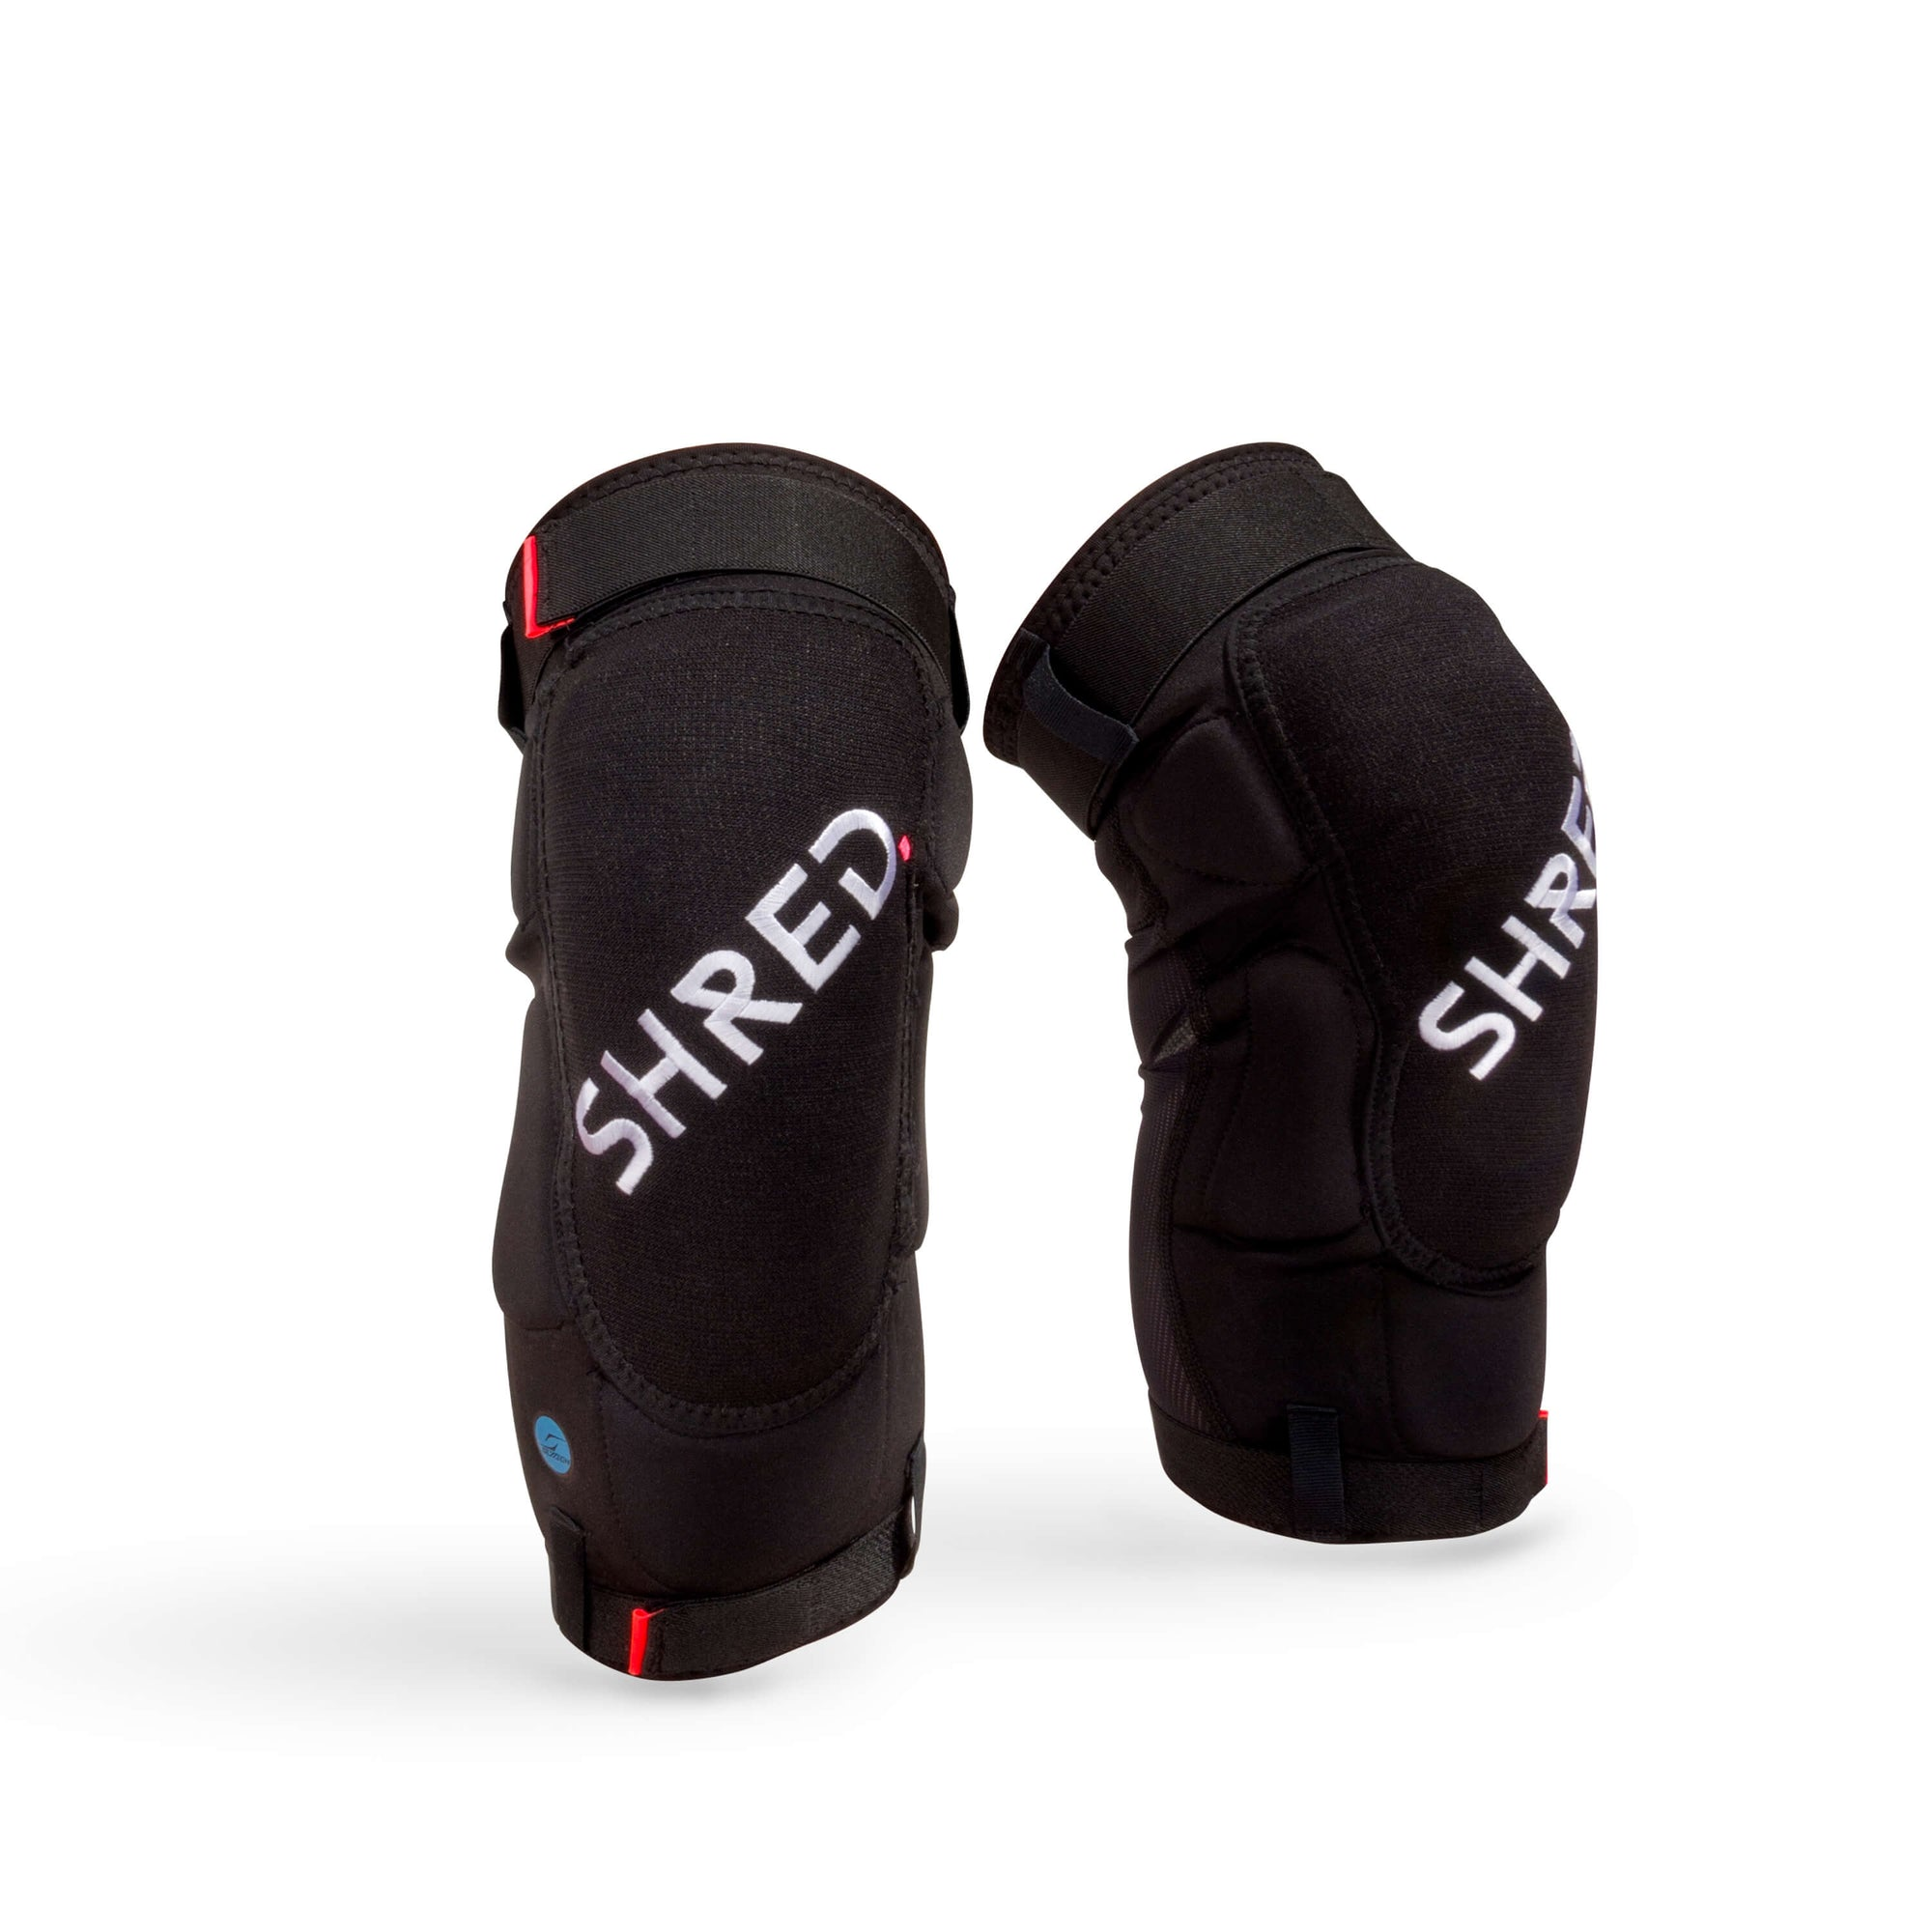 Noshock Knee Pads Heavy Duty - Knee-Elbow Pads